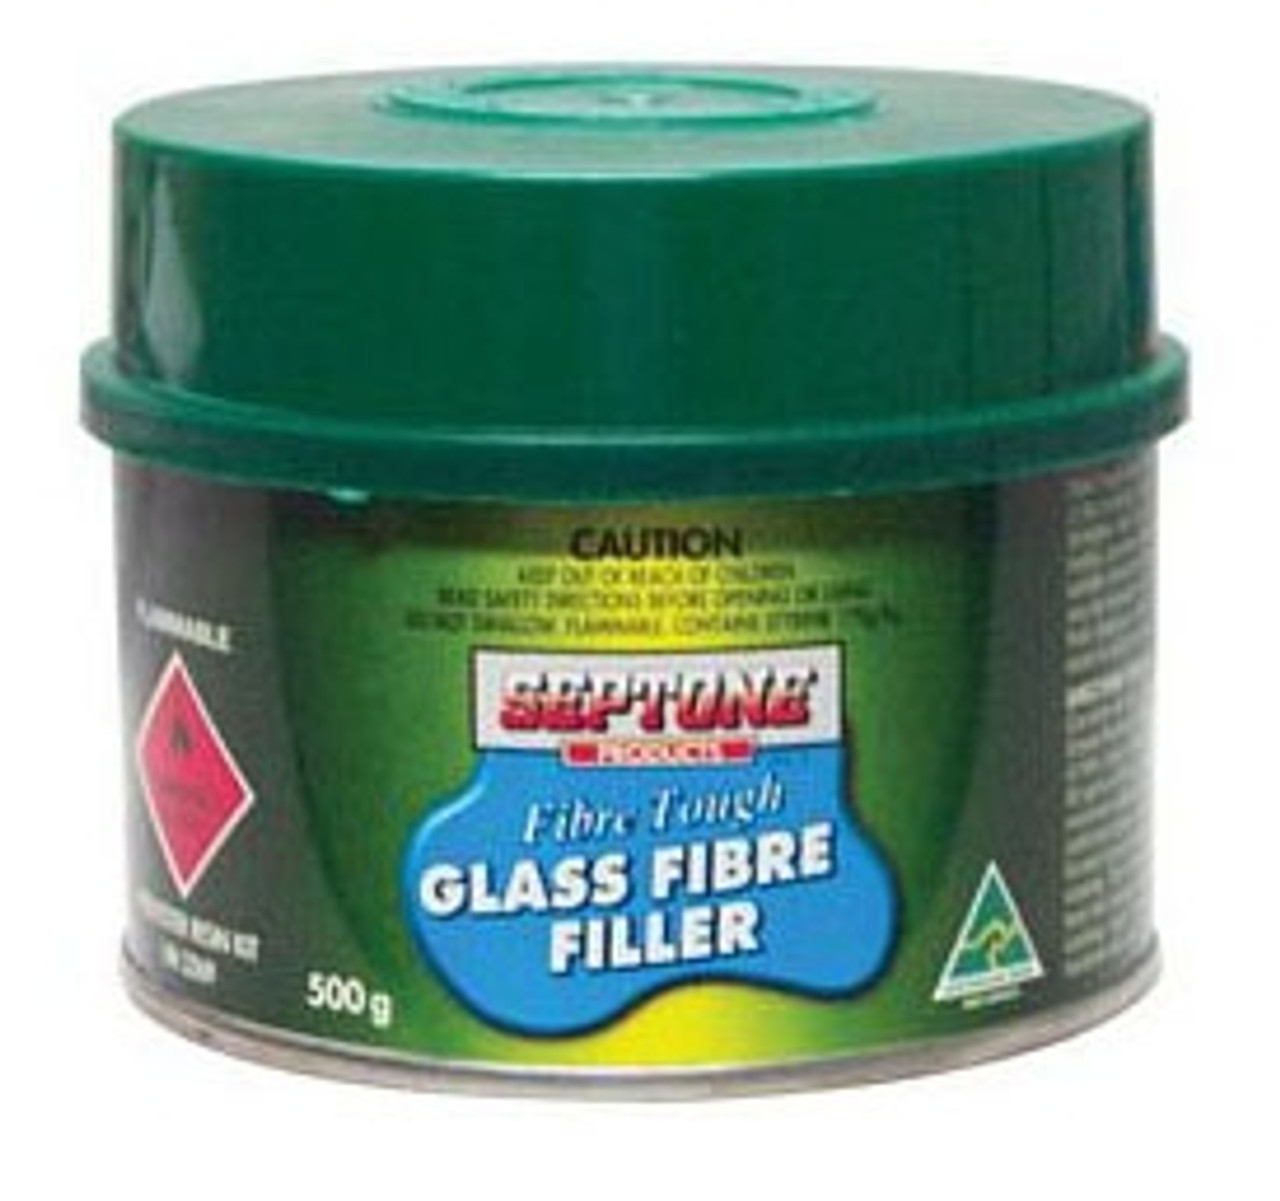 Septone Glass Fibre Filler Polyester Putty